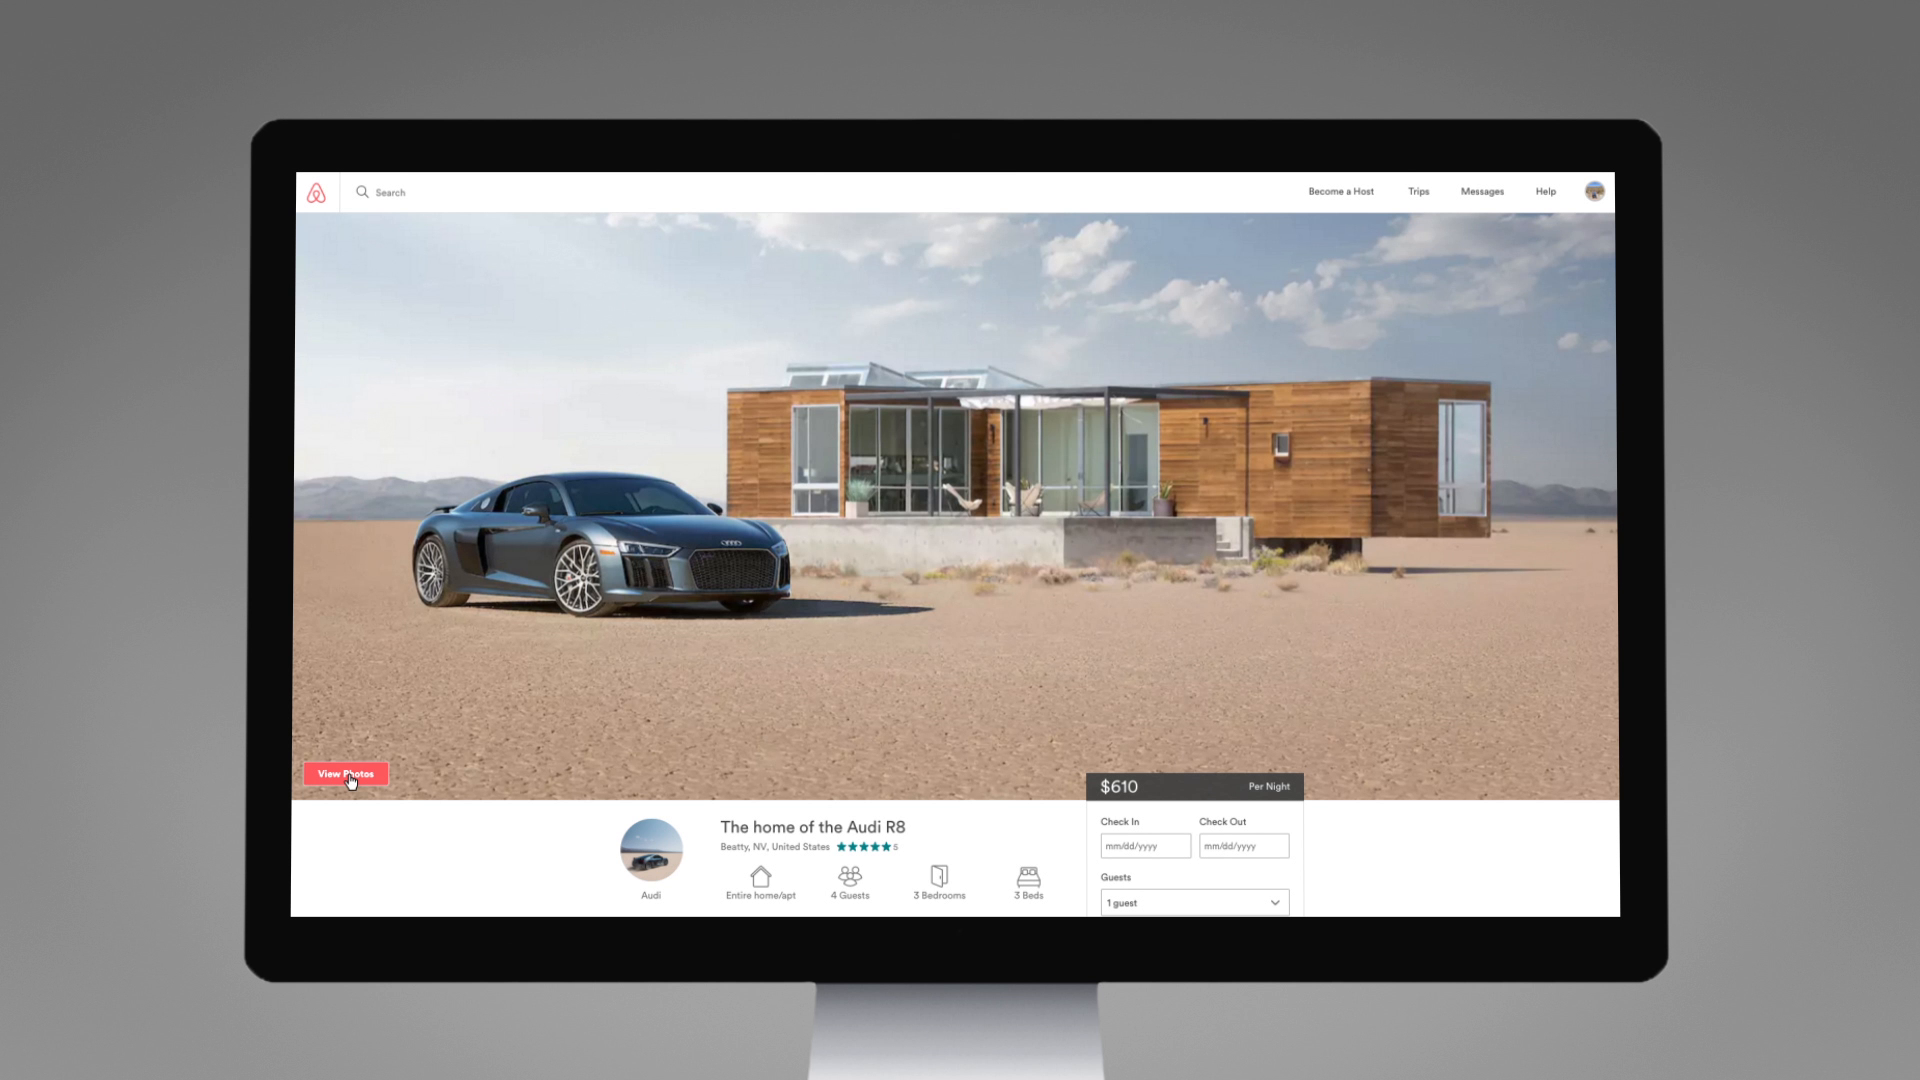 Thumbnail for Audi and Airbnb Live to Drive